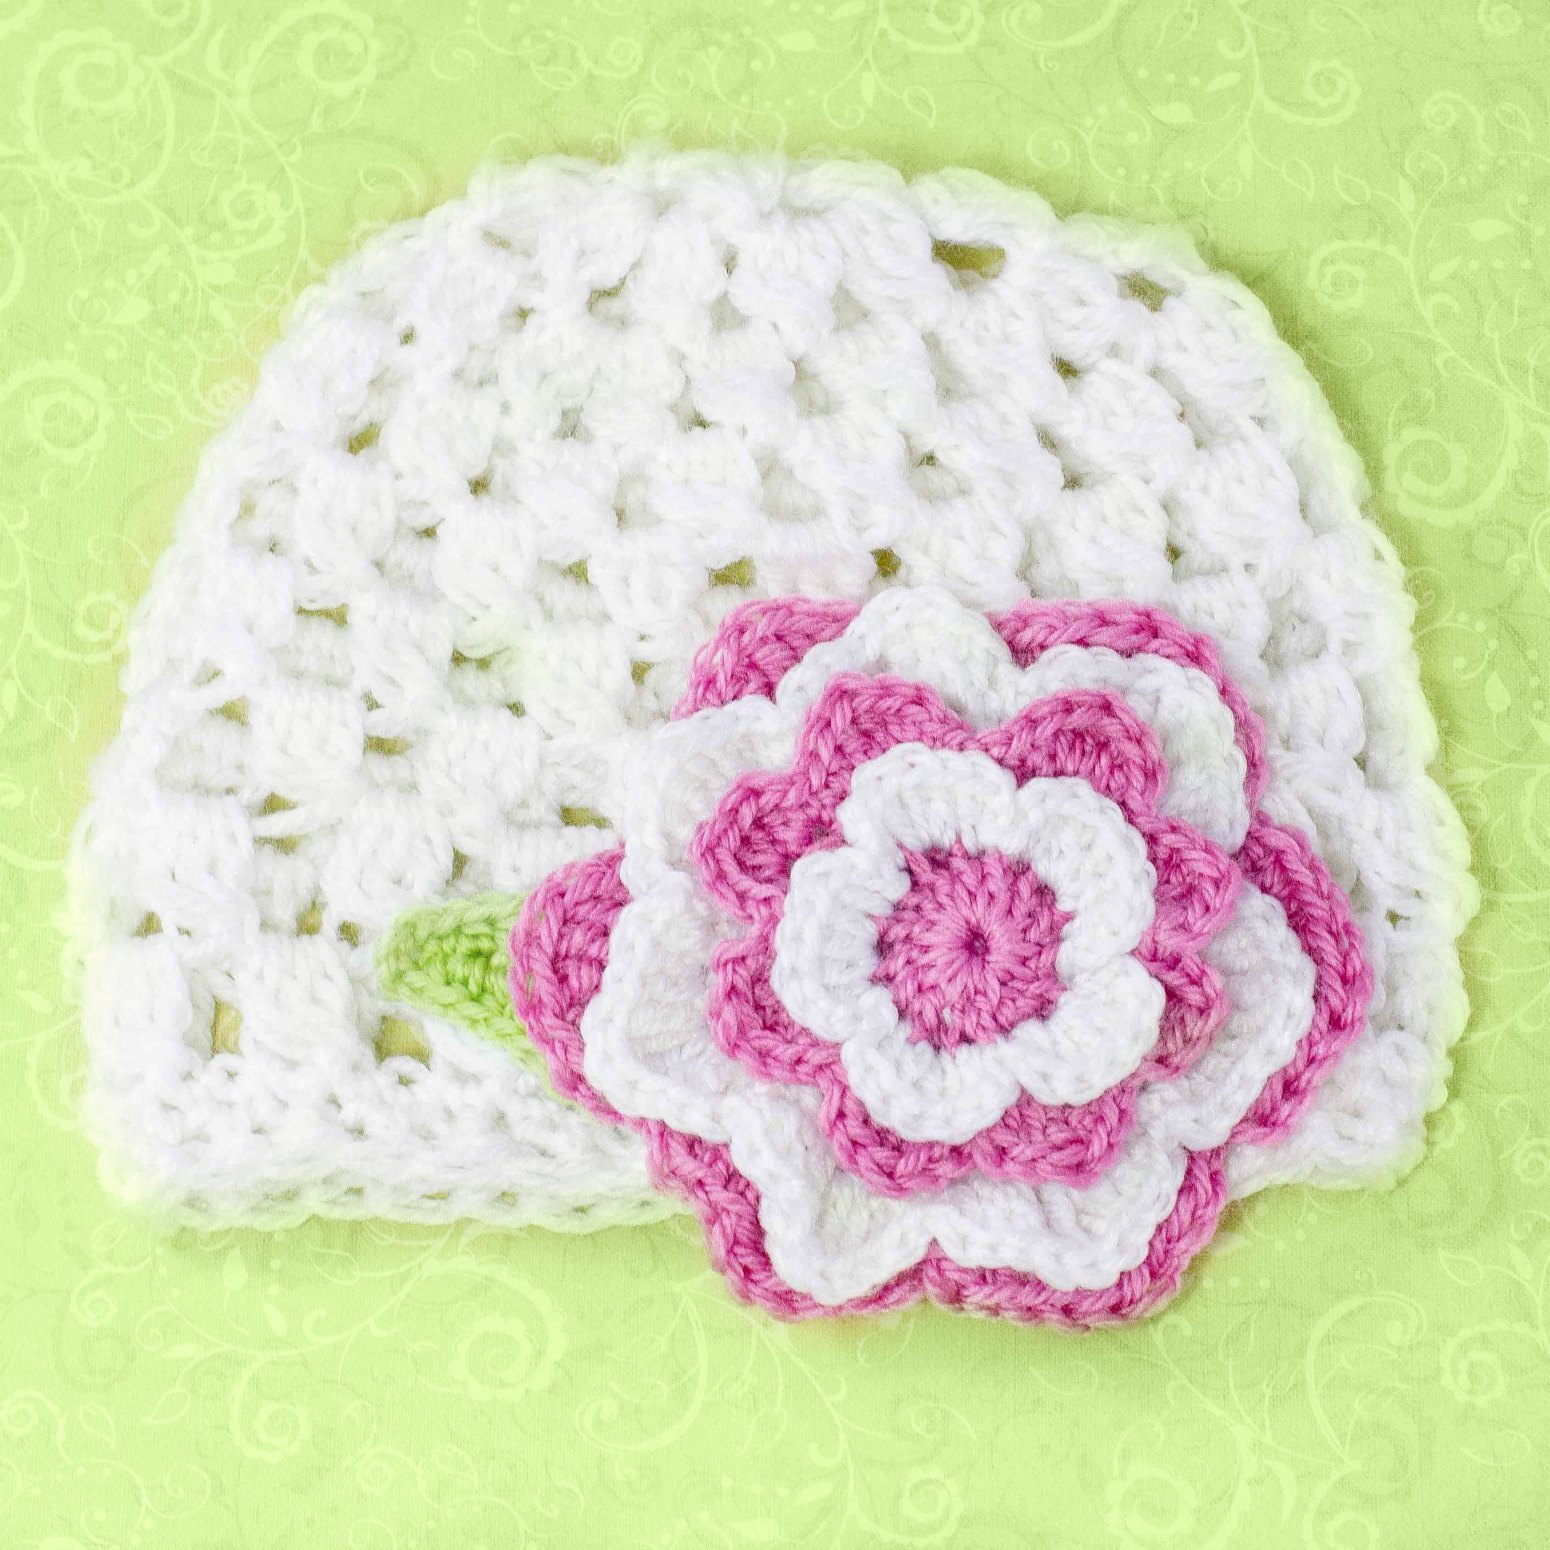 Crochet Beanie Pattern With Flower : Multi Layered Flower Pattern - Media - Crochet Me